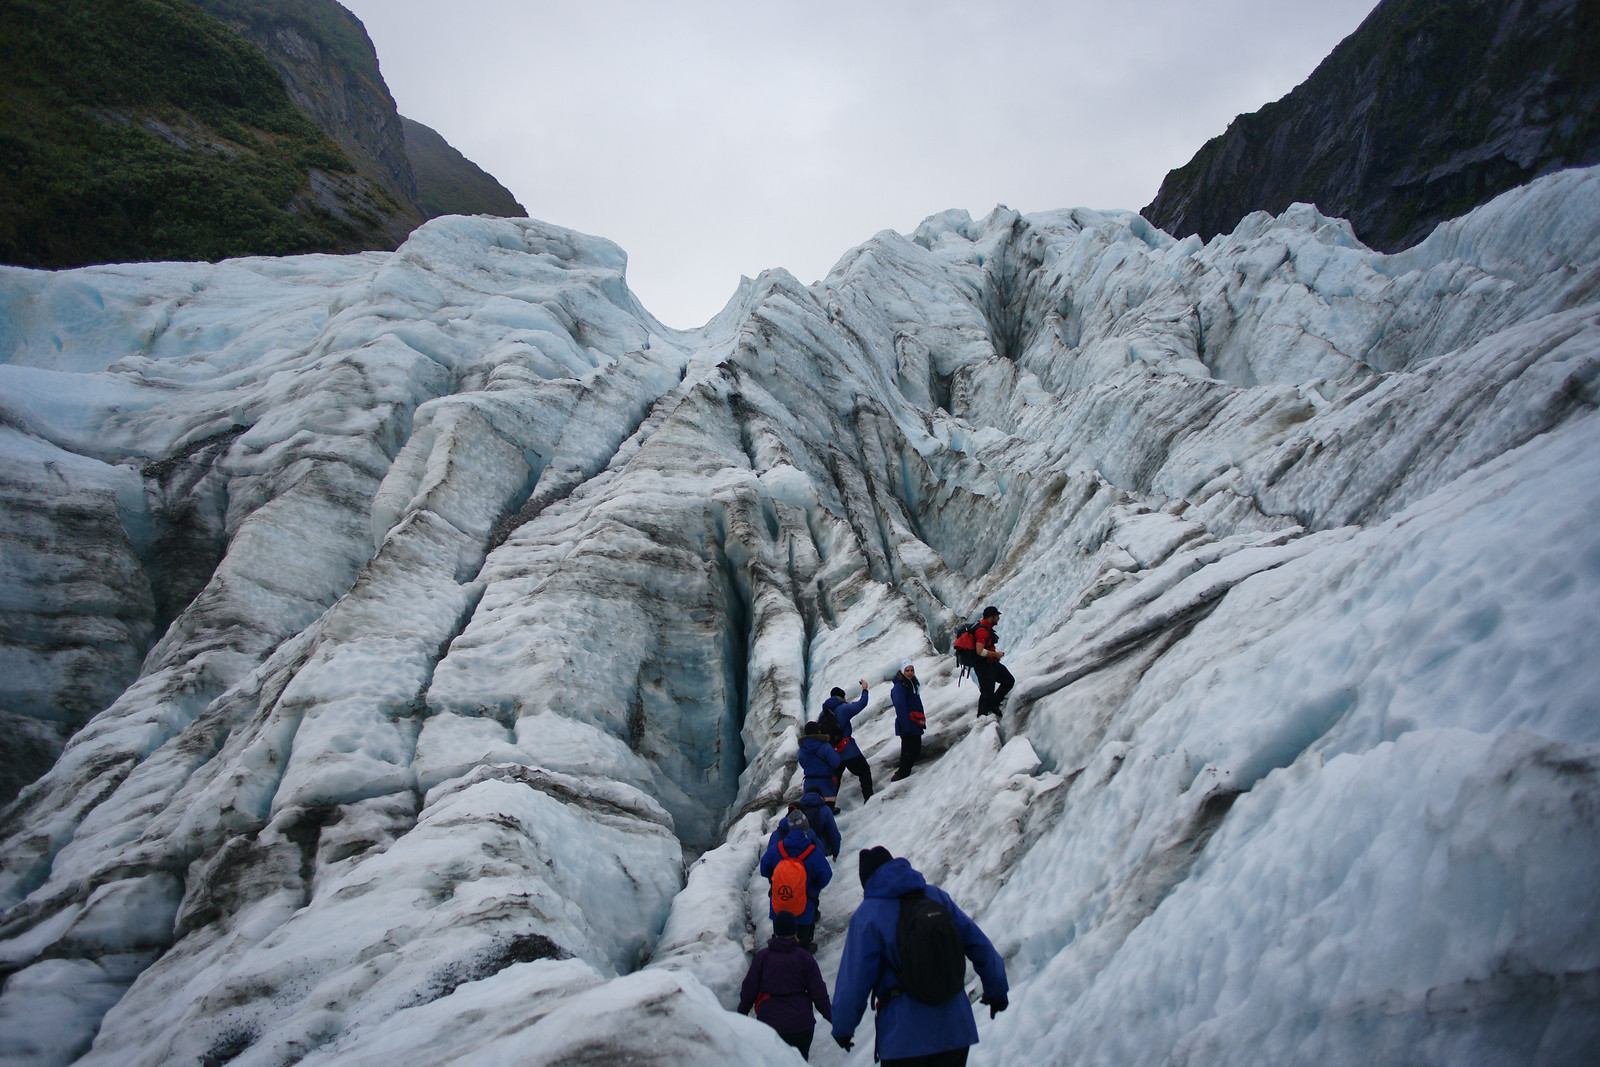 Hiking up the Franz-Josef glacier (New Zealand)